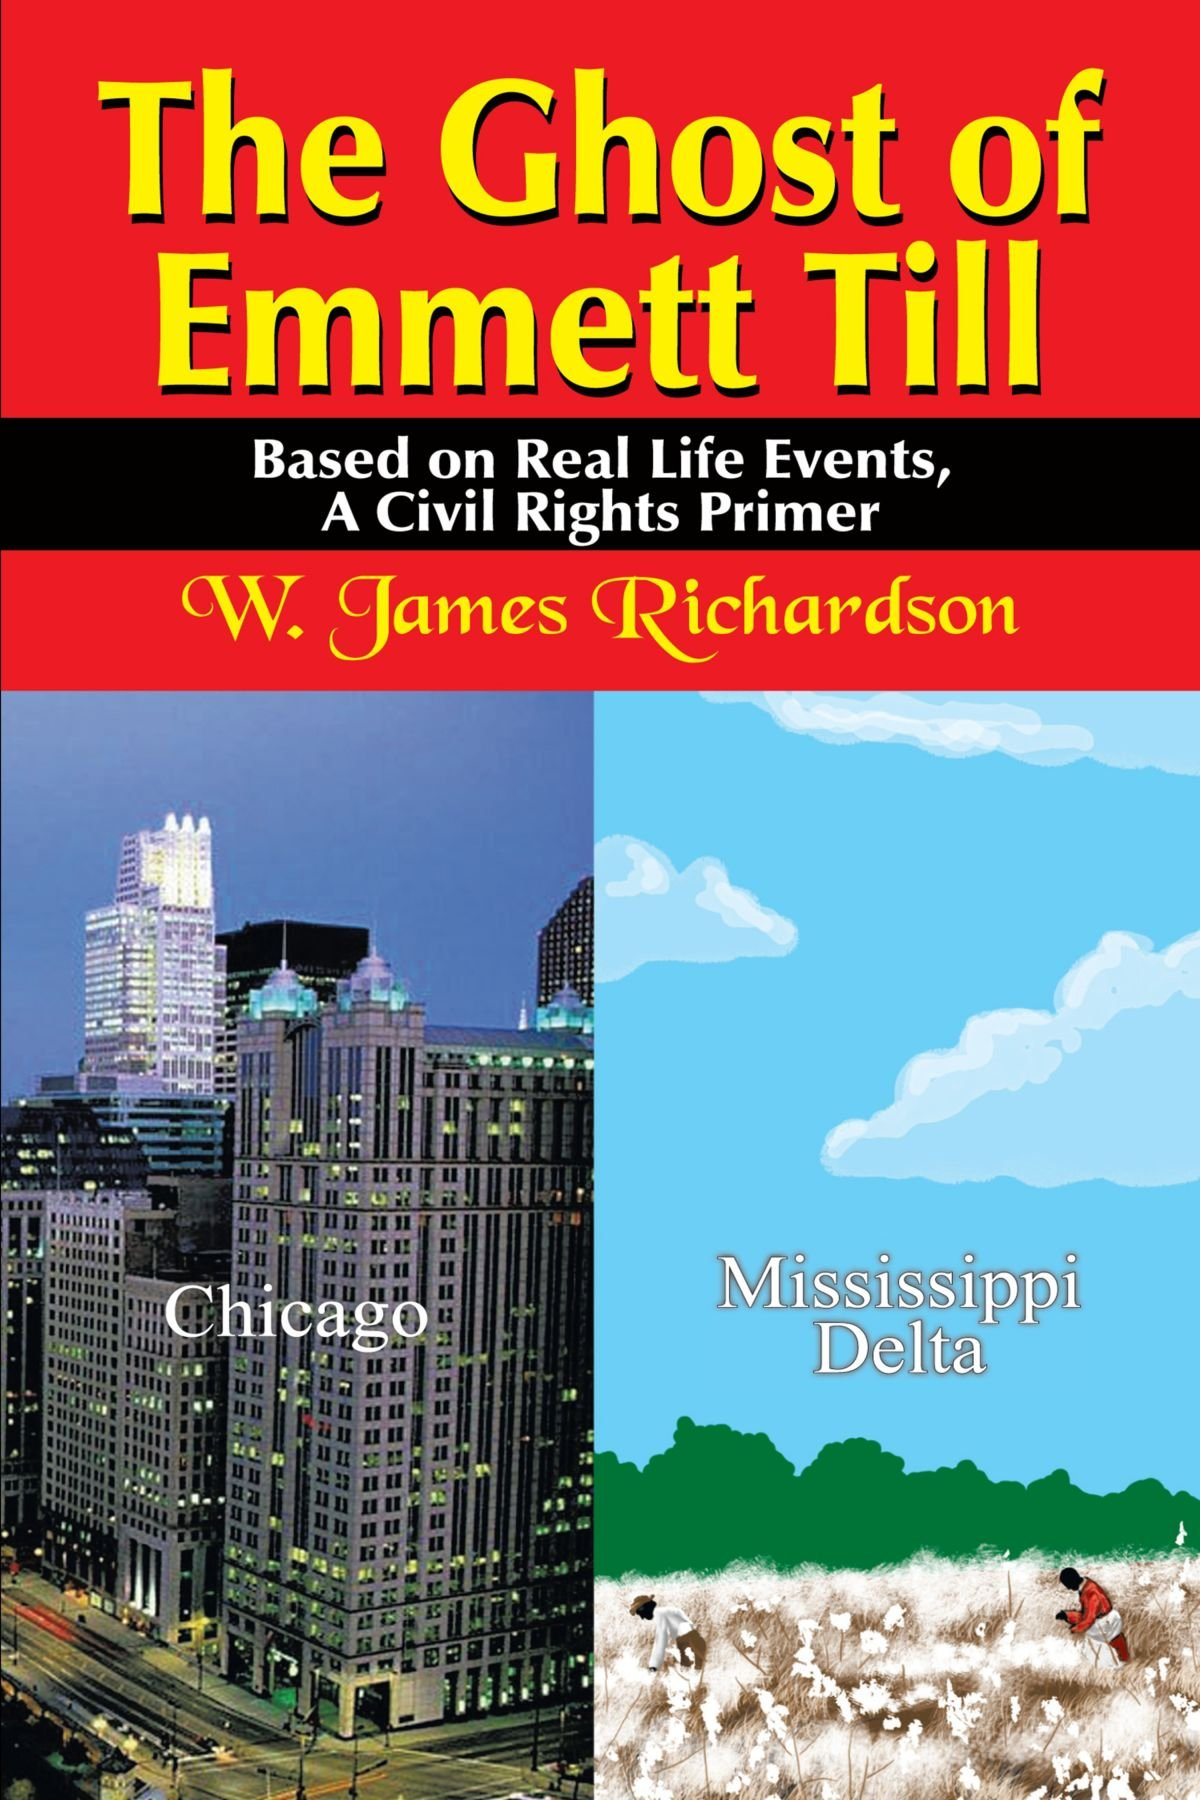 The Ghost of Emmett Till: Based on Real Life Events, A Civil Rights Primer PDF